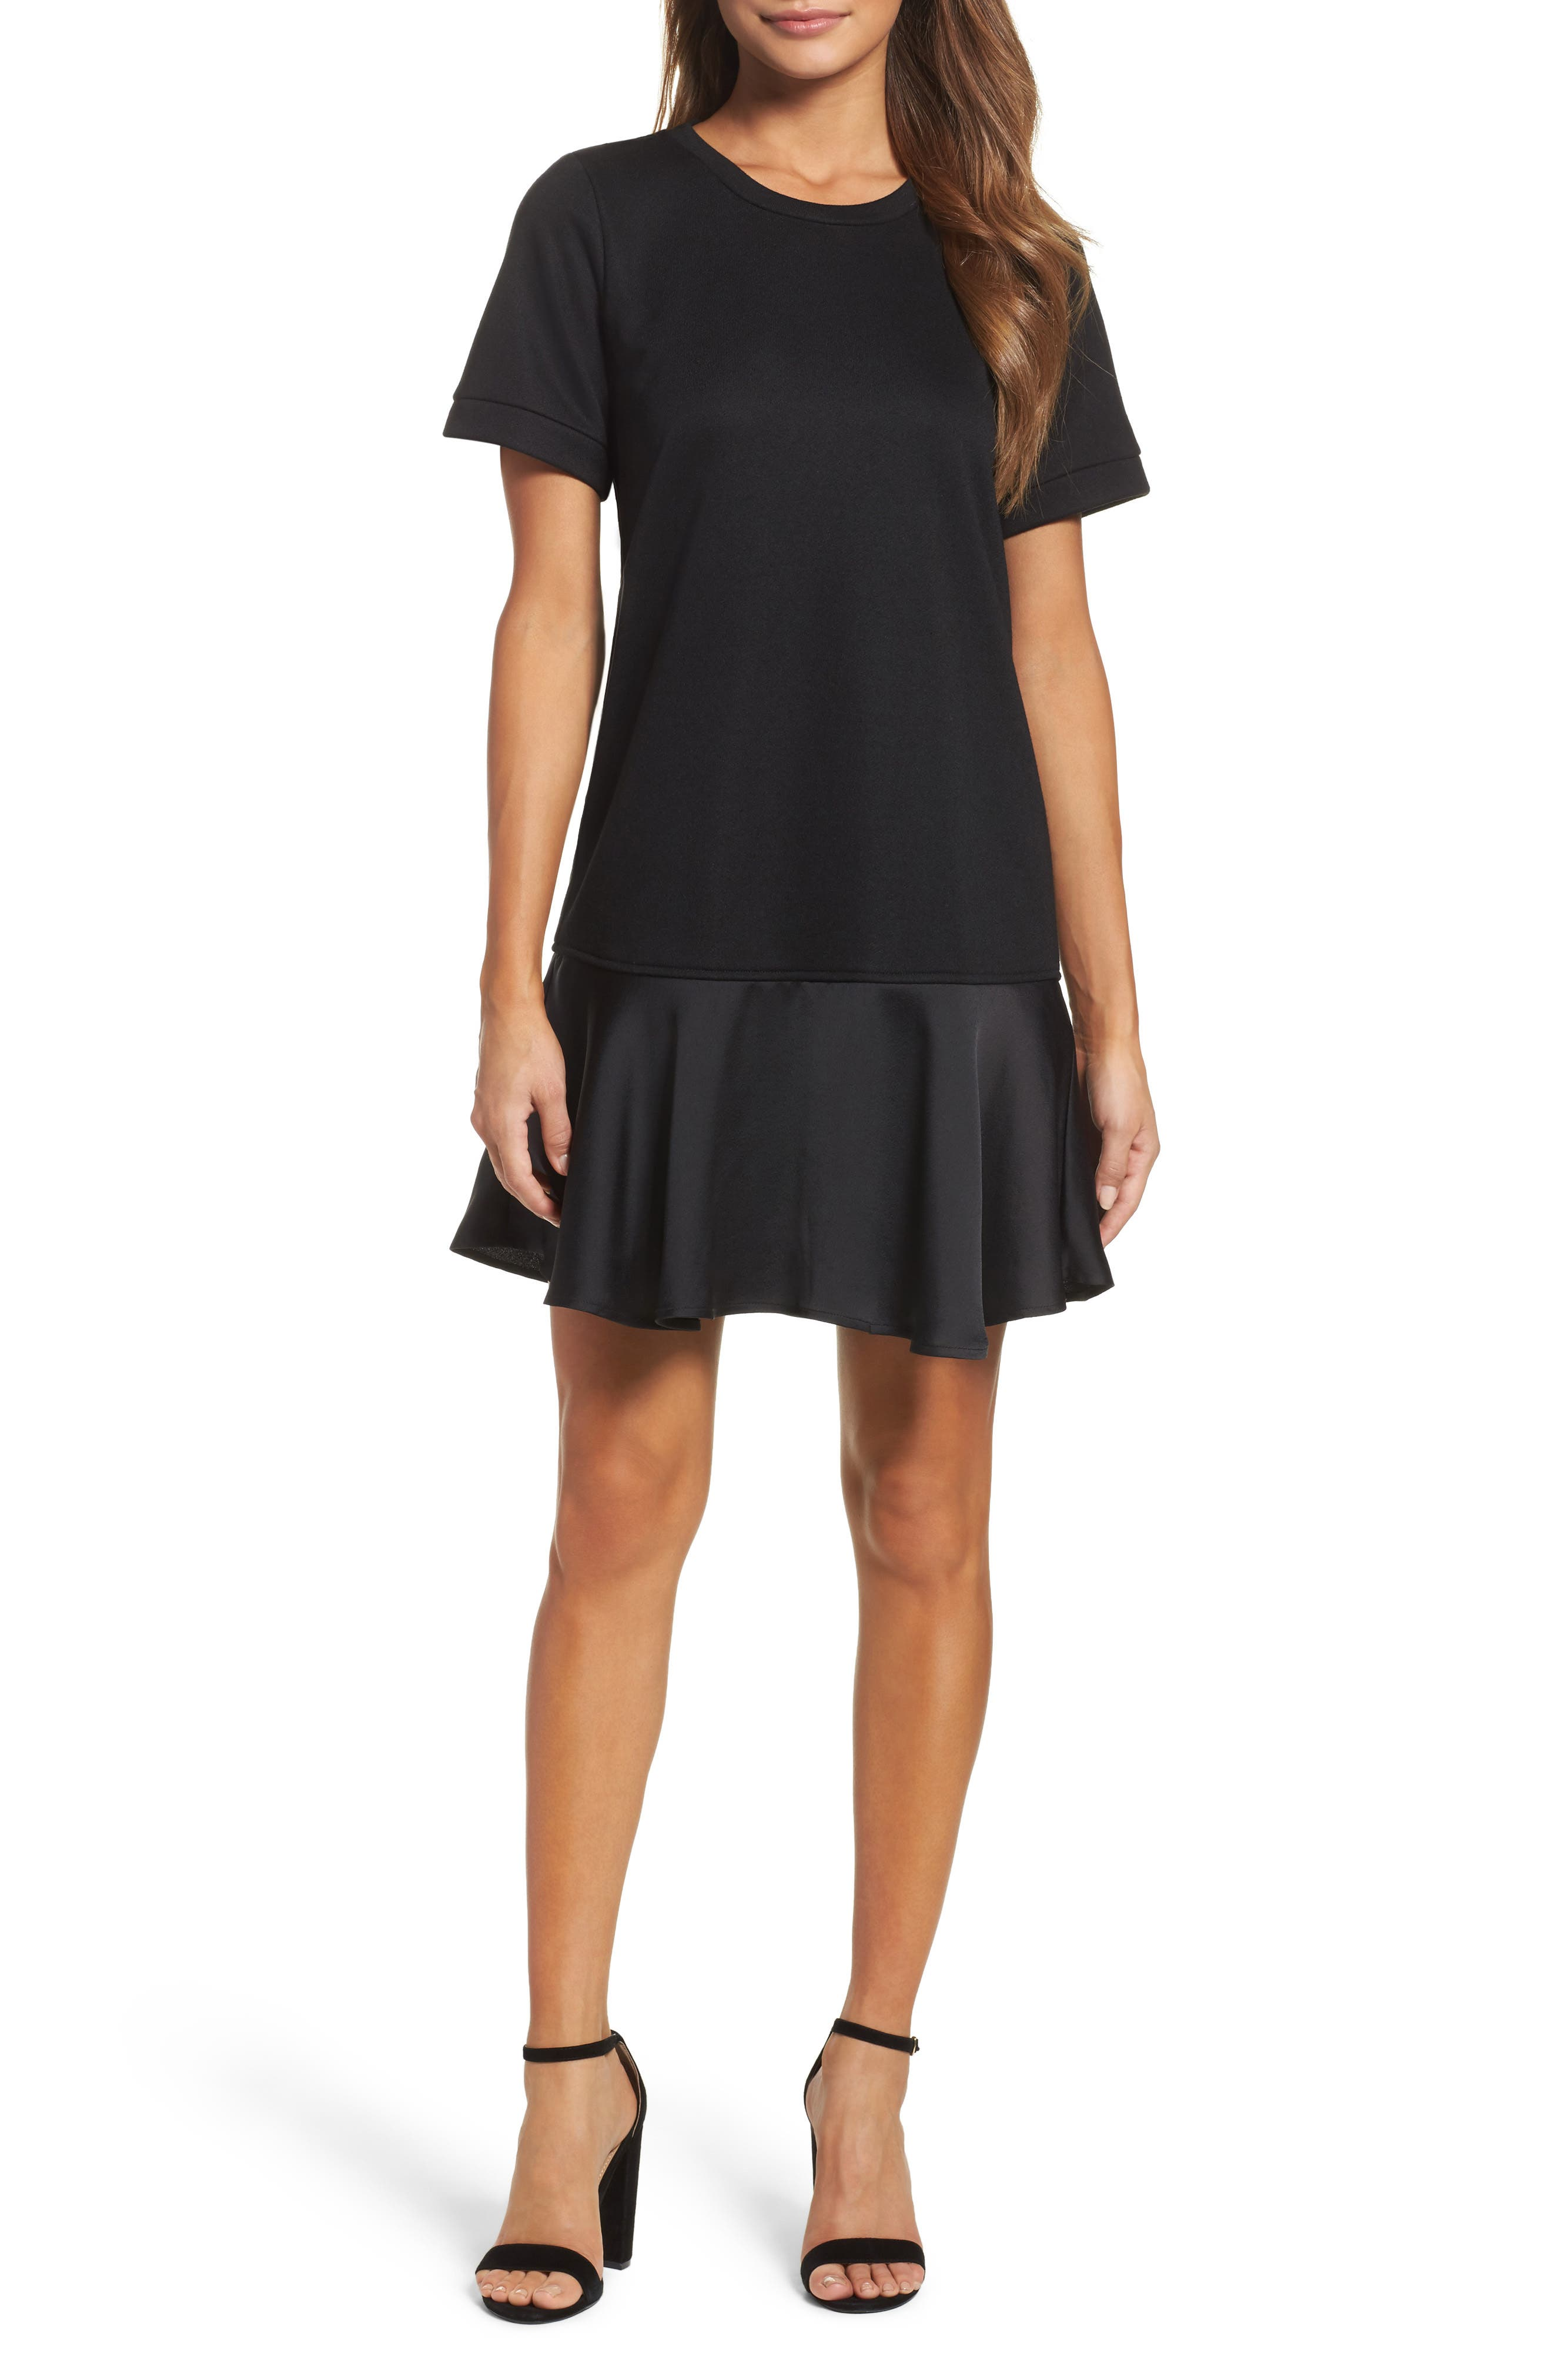 CHELSEA28 Ruffle Hem Sweatshirt Dress